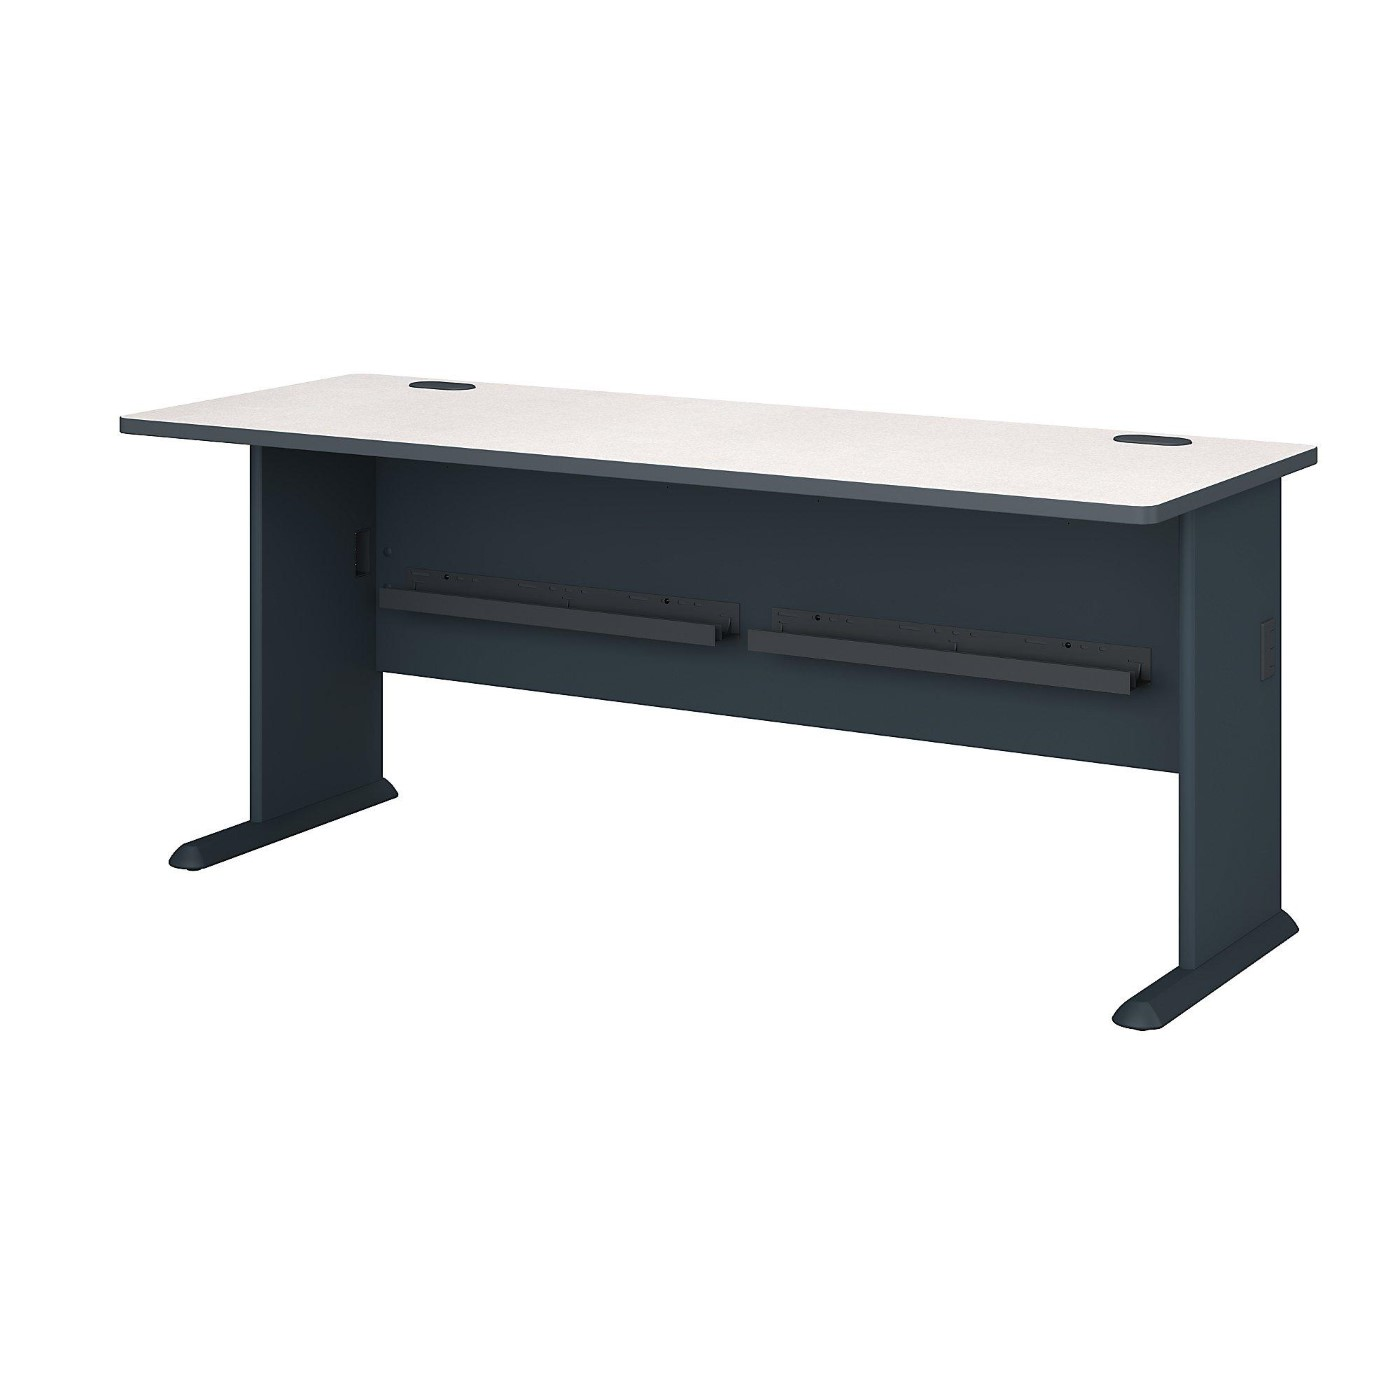 <font color=#c60><b>BUSH BUSINESS FURNITURE SERIES A 72W DESK. FREE SHIPPING</font></b></font></b>